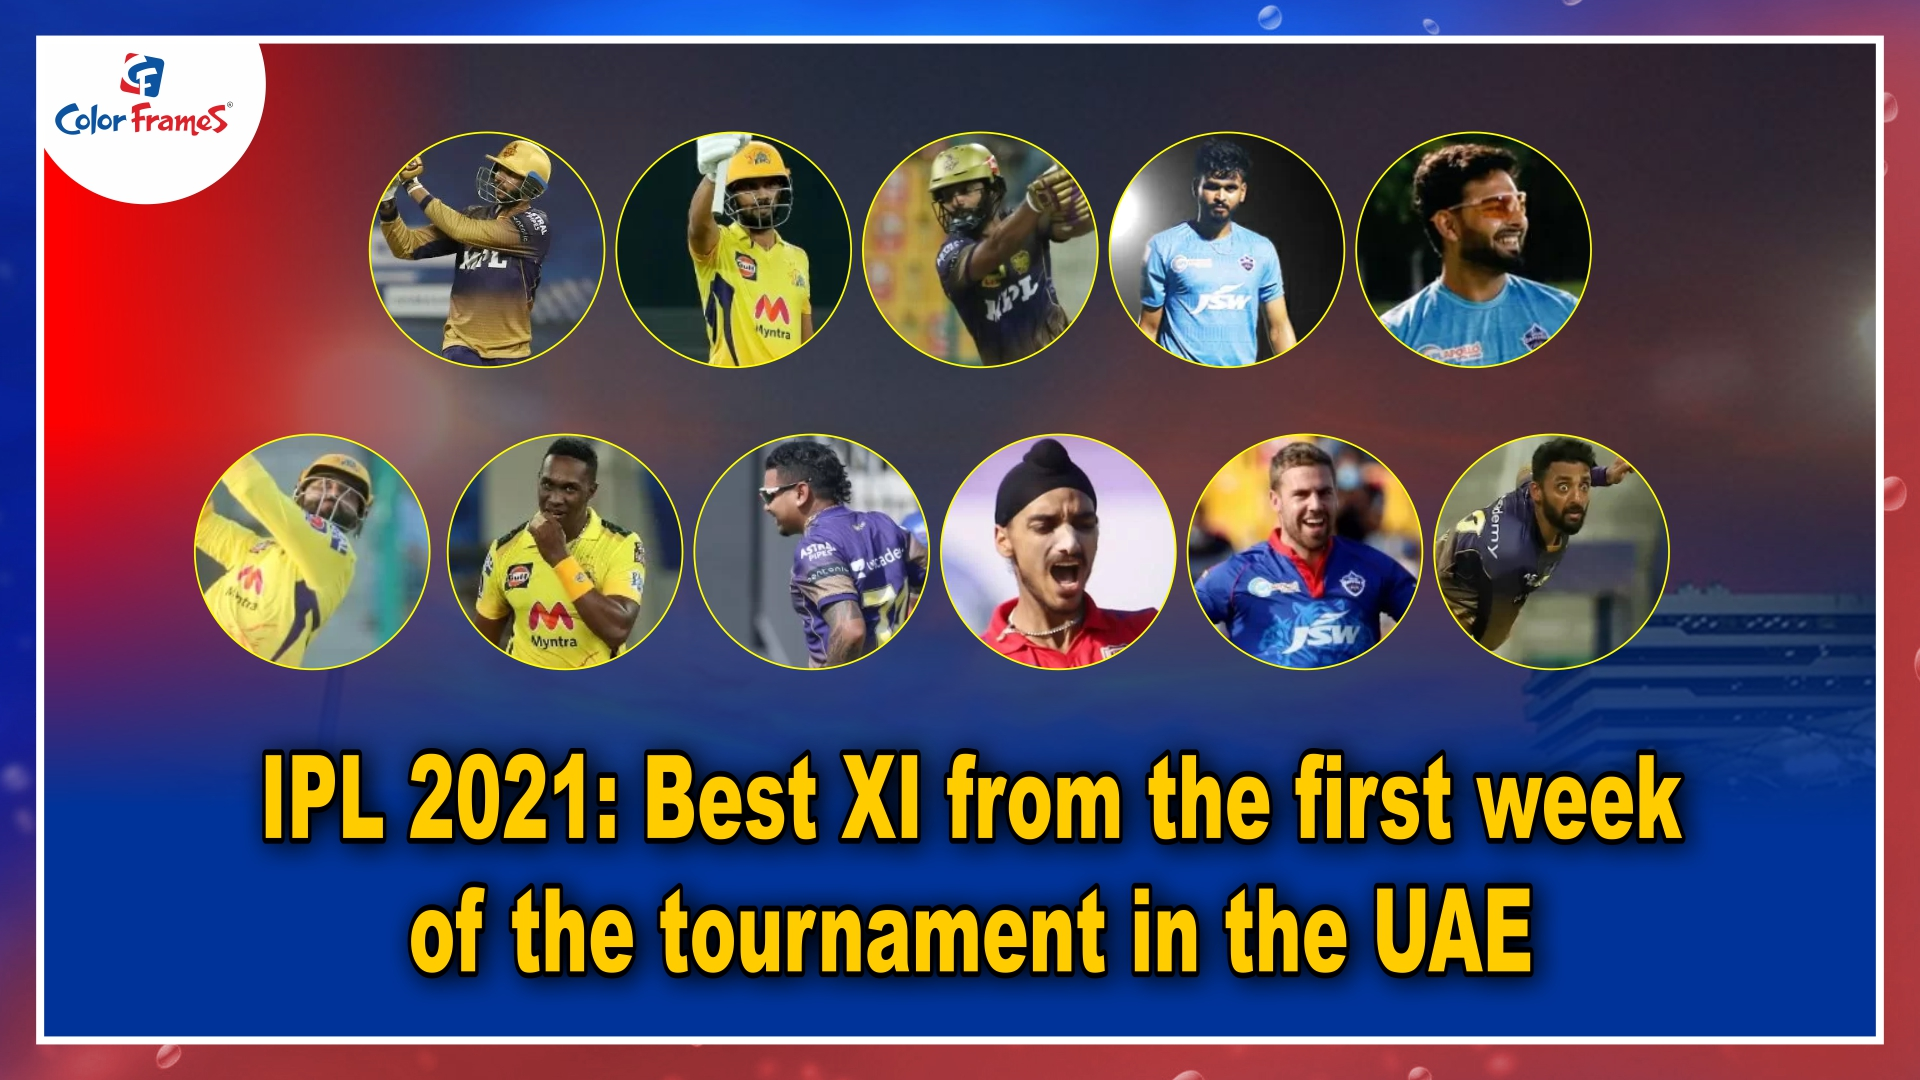 IPL 2021: Best XI from the first week of the tournament in the UAE